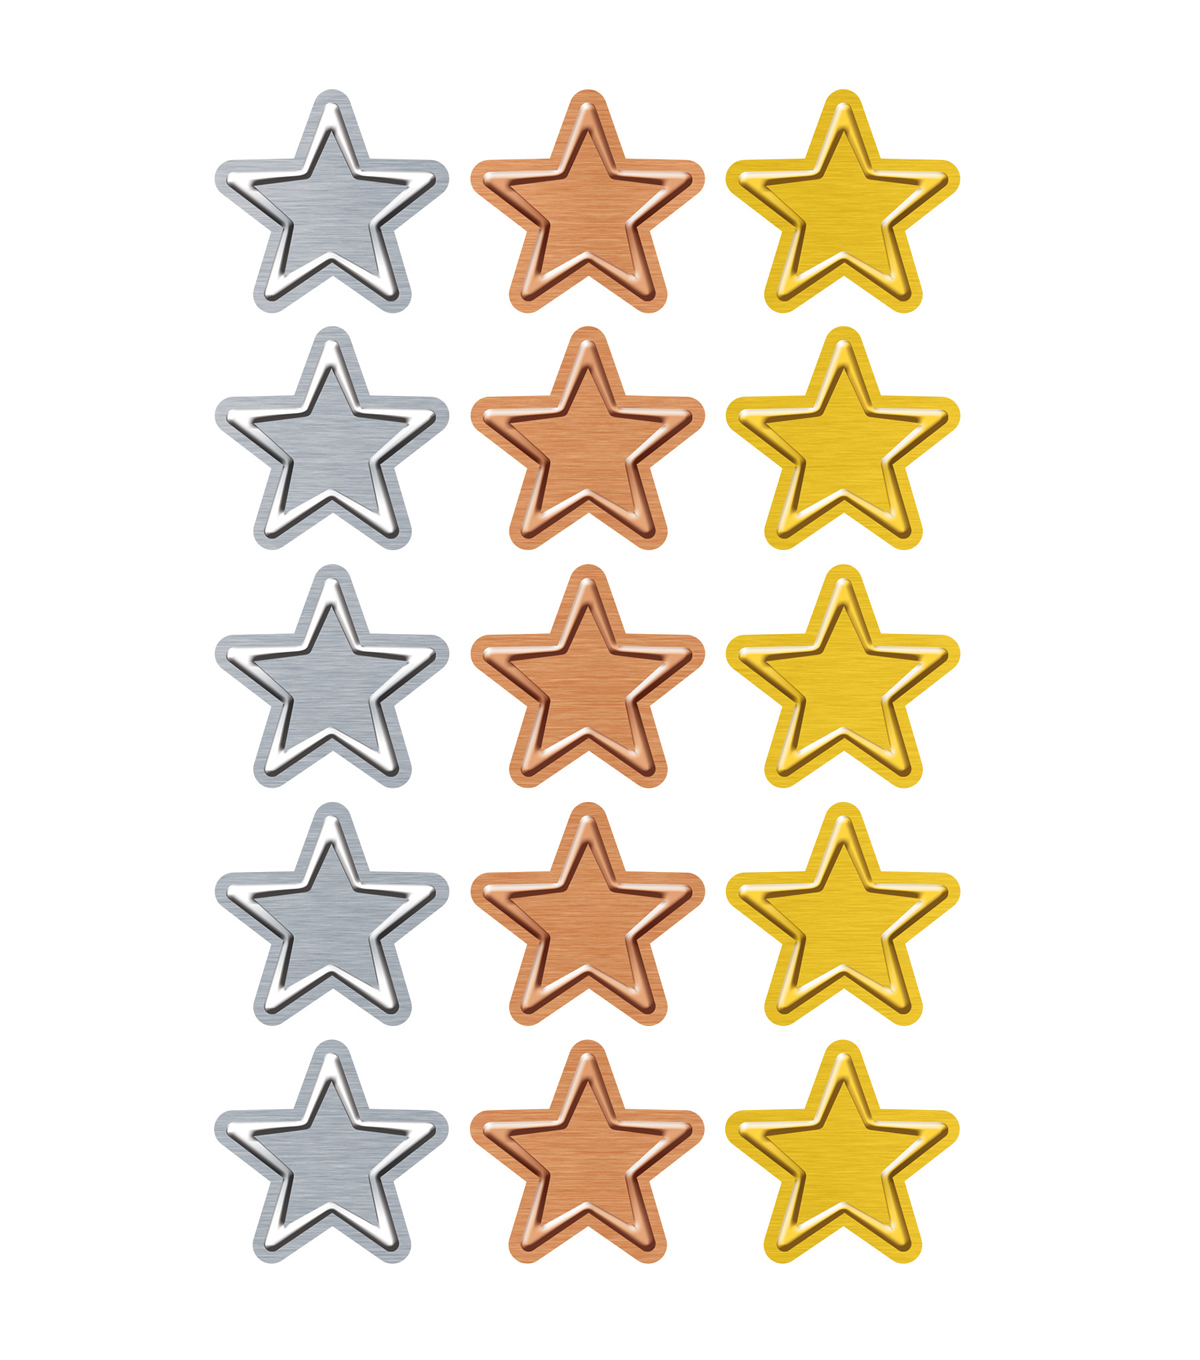 I ? Metal Stars superShapes Stickers-Large 20 Per Pack, 6 Packs